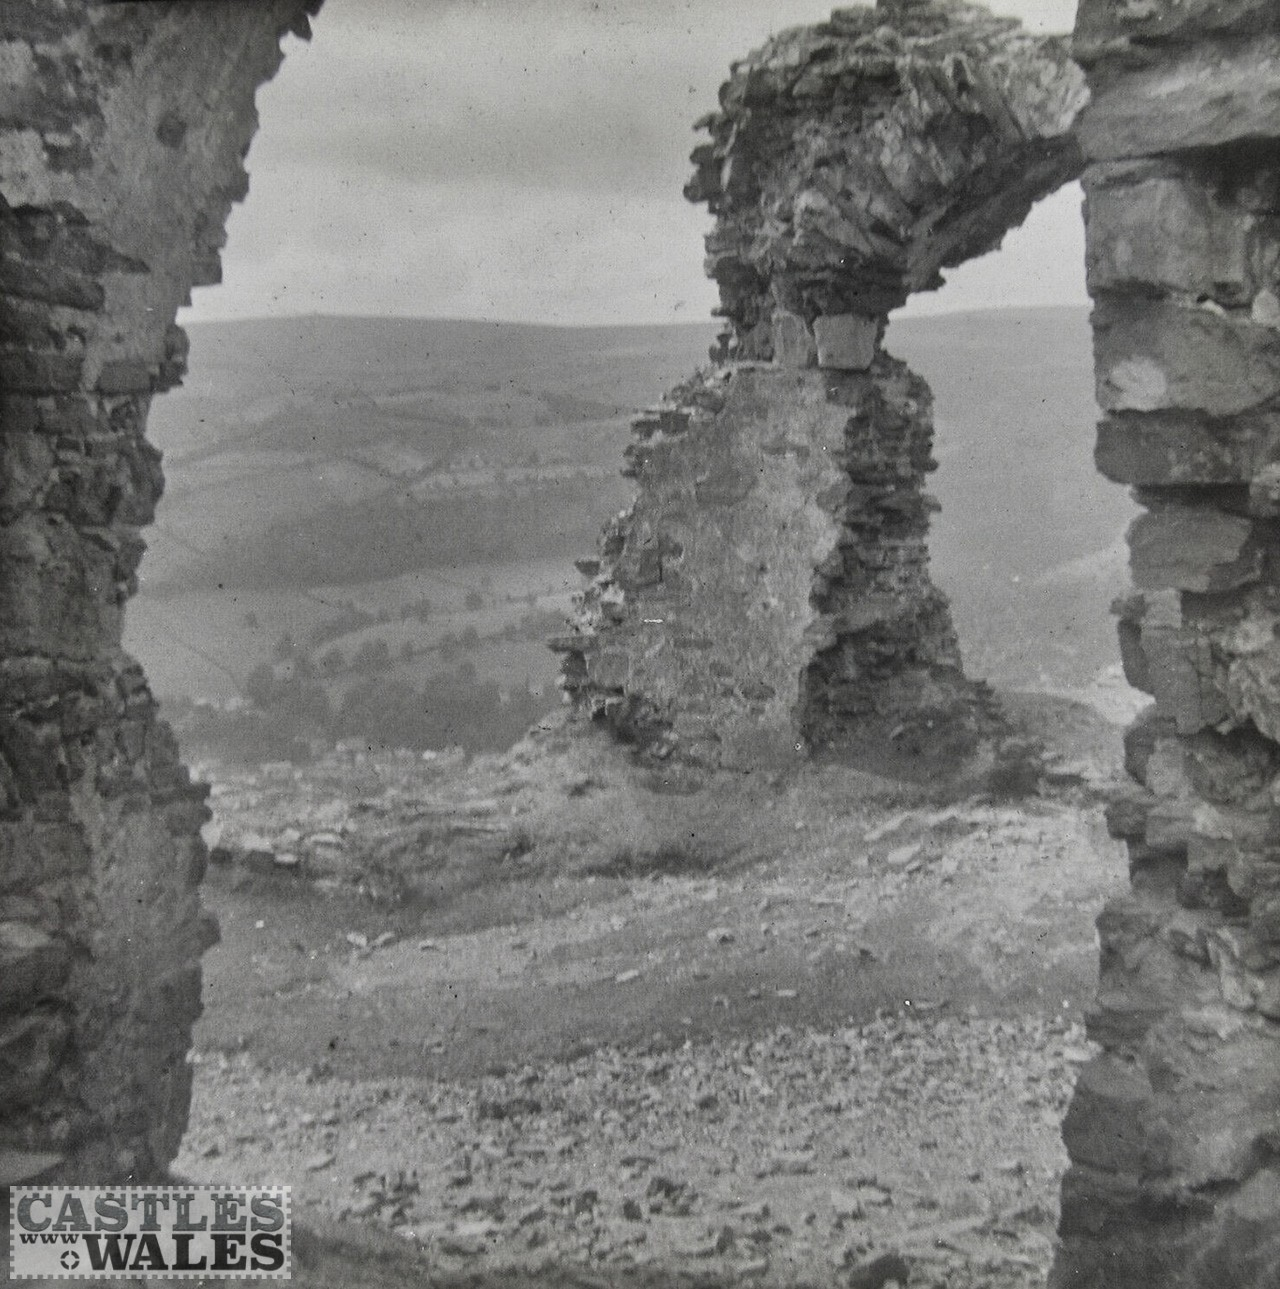 Dinas Bran Castle Magic Lantern Slide c.1900